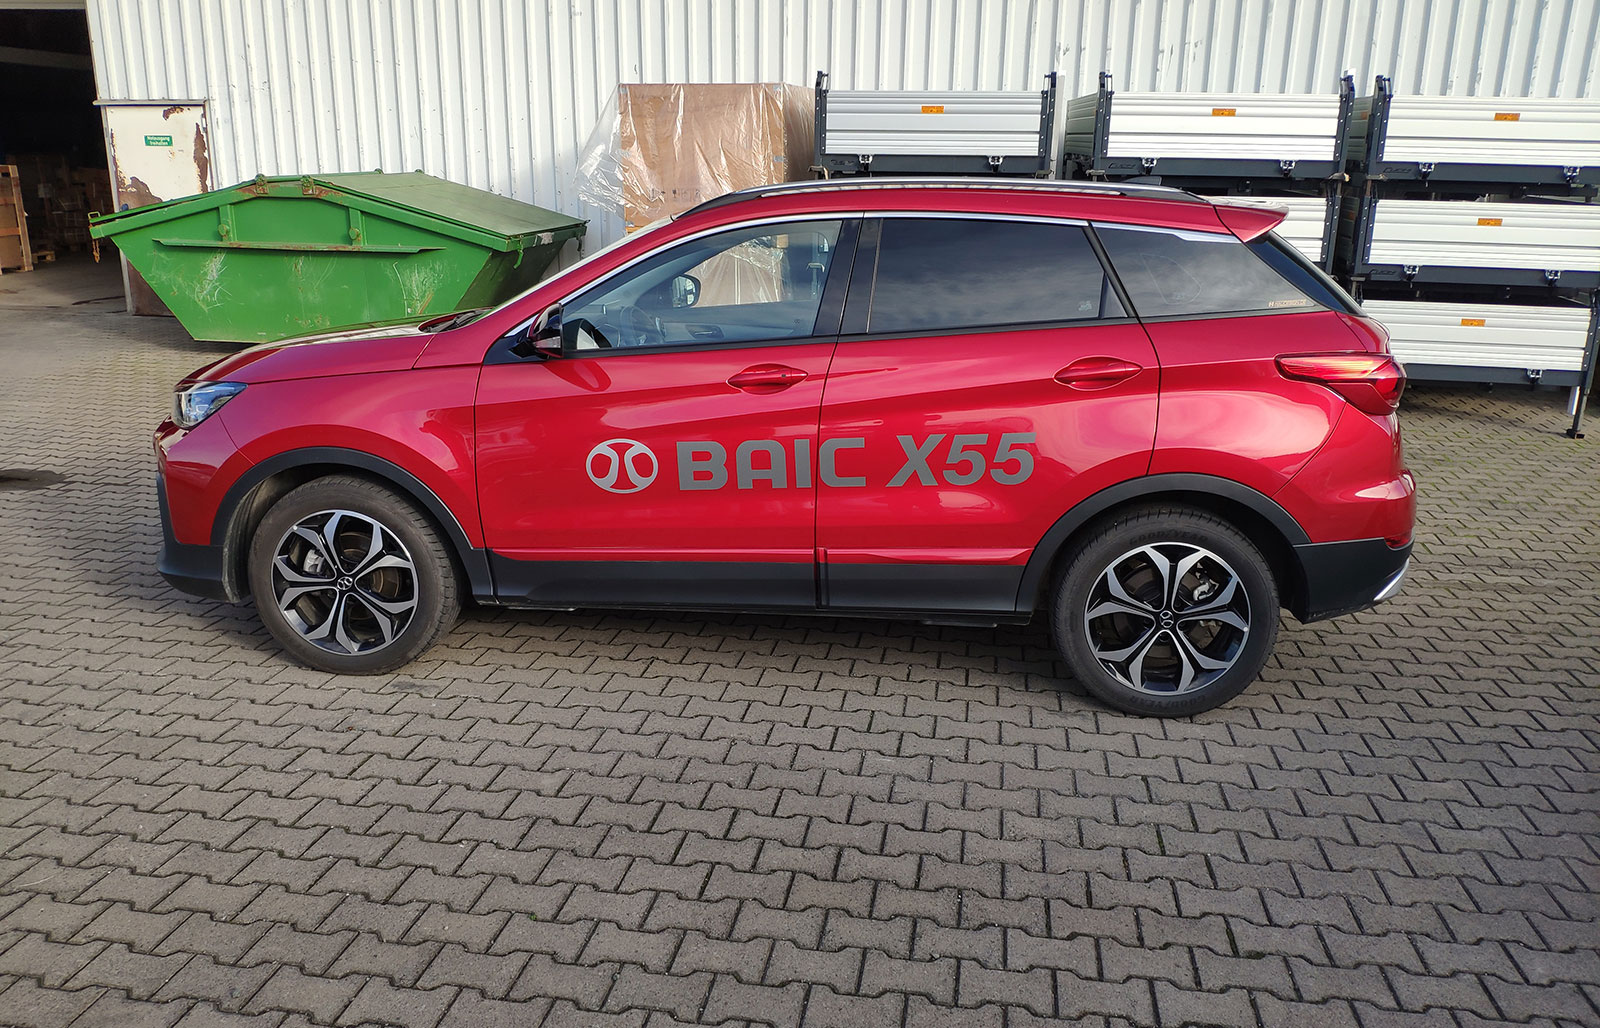 BAIC X55 AT 1.5T for test at CPA